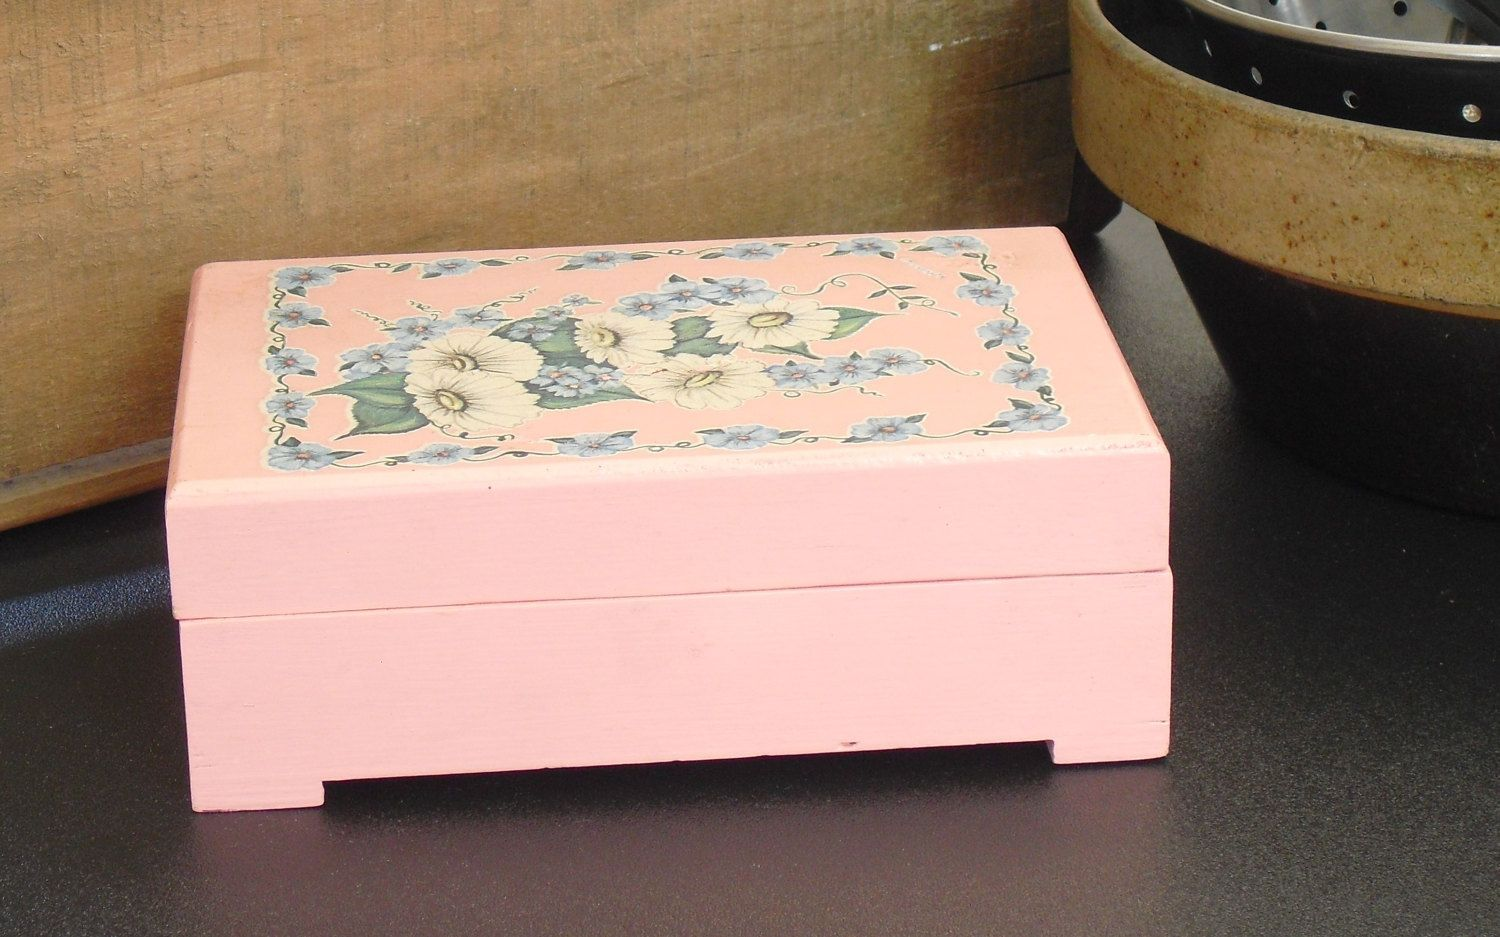 Vintage Childs Hand Painted Floral Jewelry Box, Pink Wooden Jewelry Box, Storage Container, Bedroom Decor, Pink Jewelry Chest, Girls Old Box by AgsVintageCove on Etsy